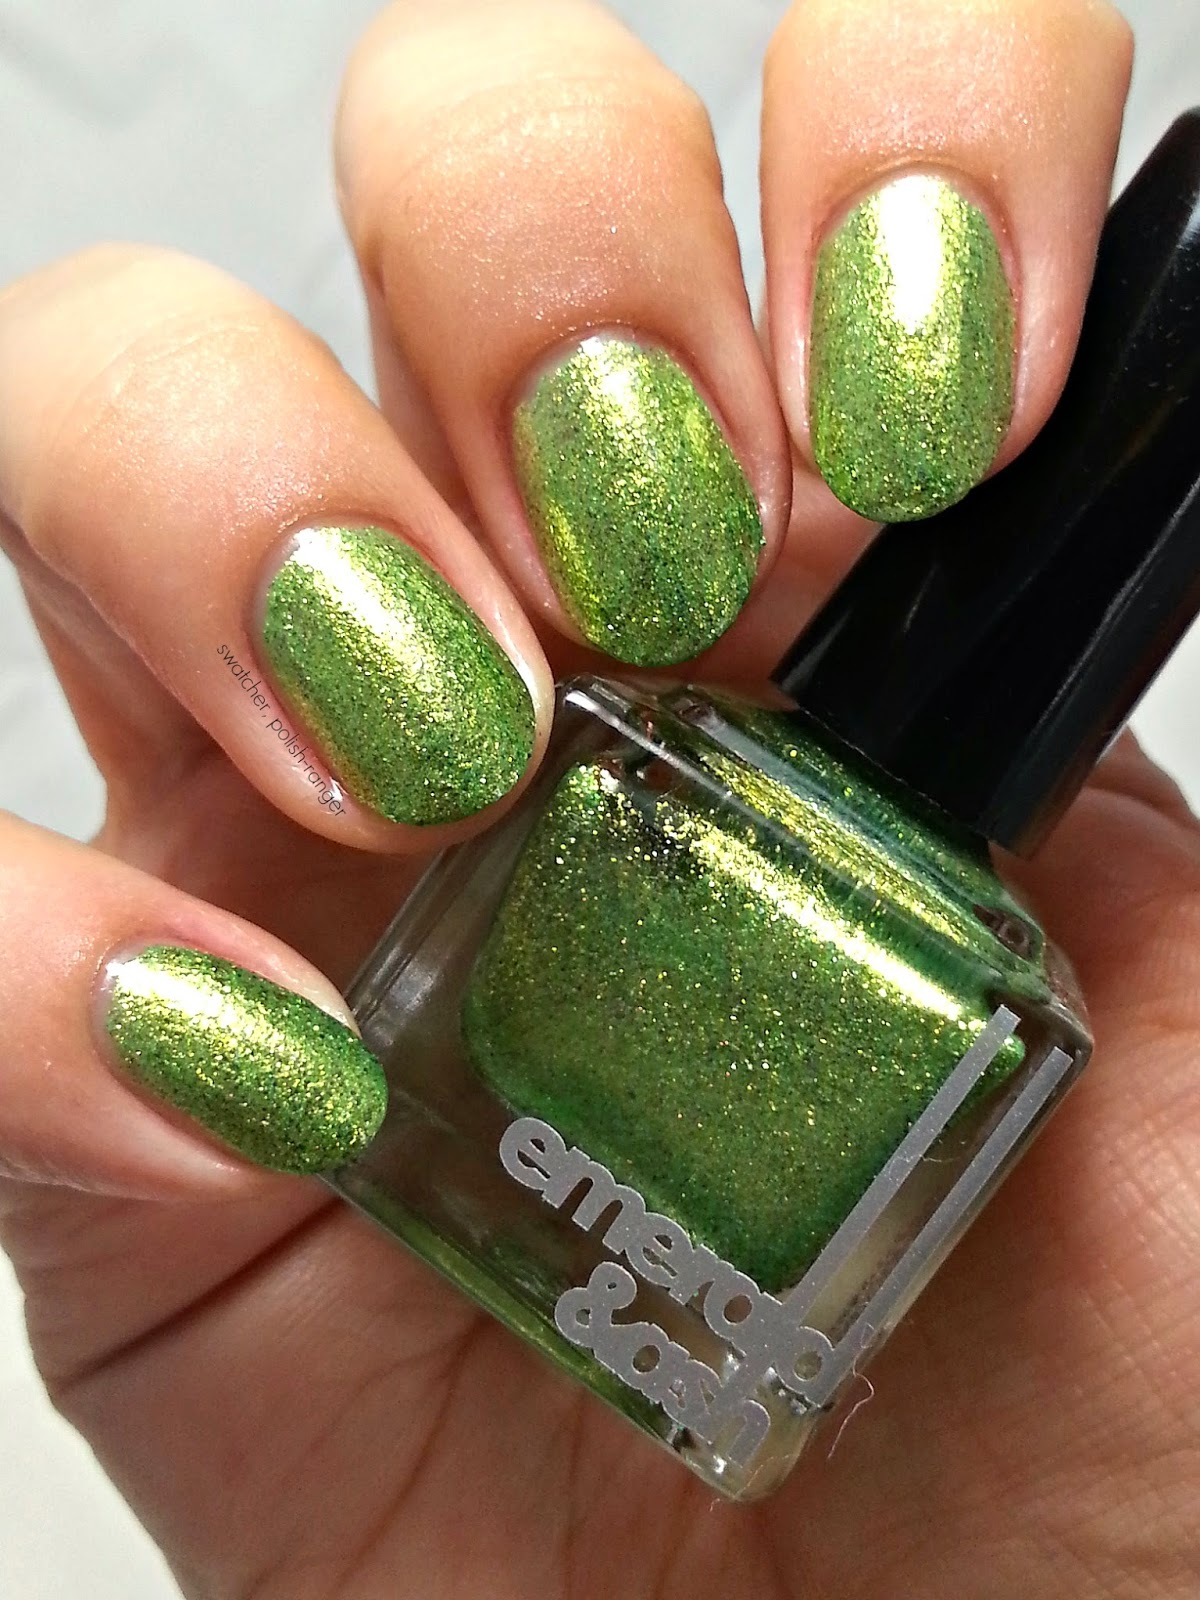 Emerald & Ash Magic Bananas swatch